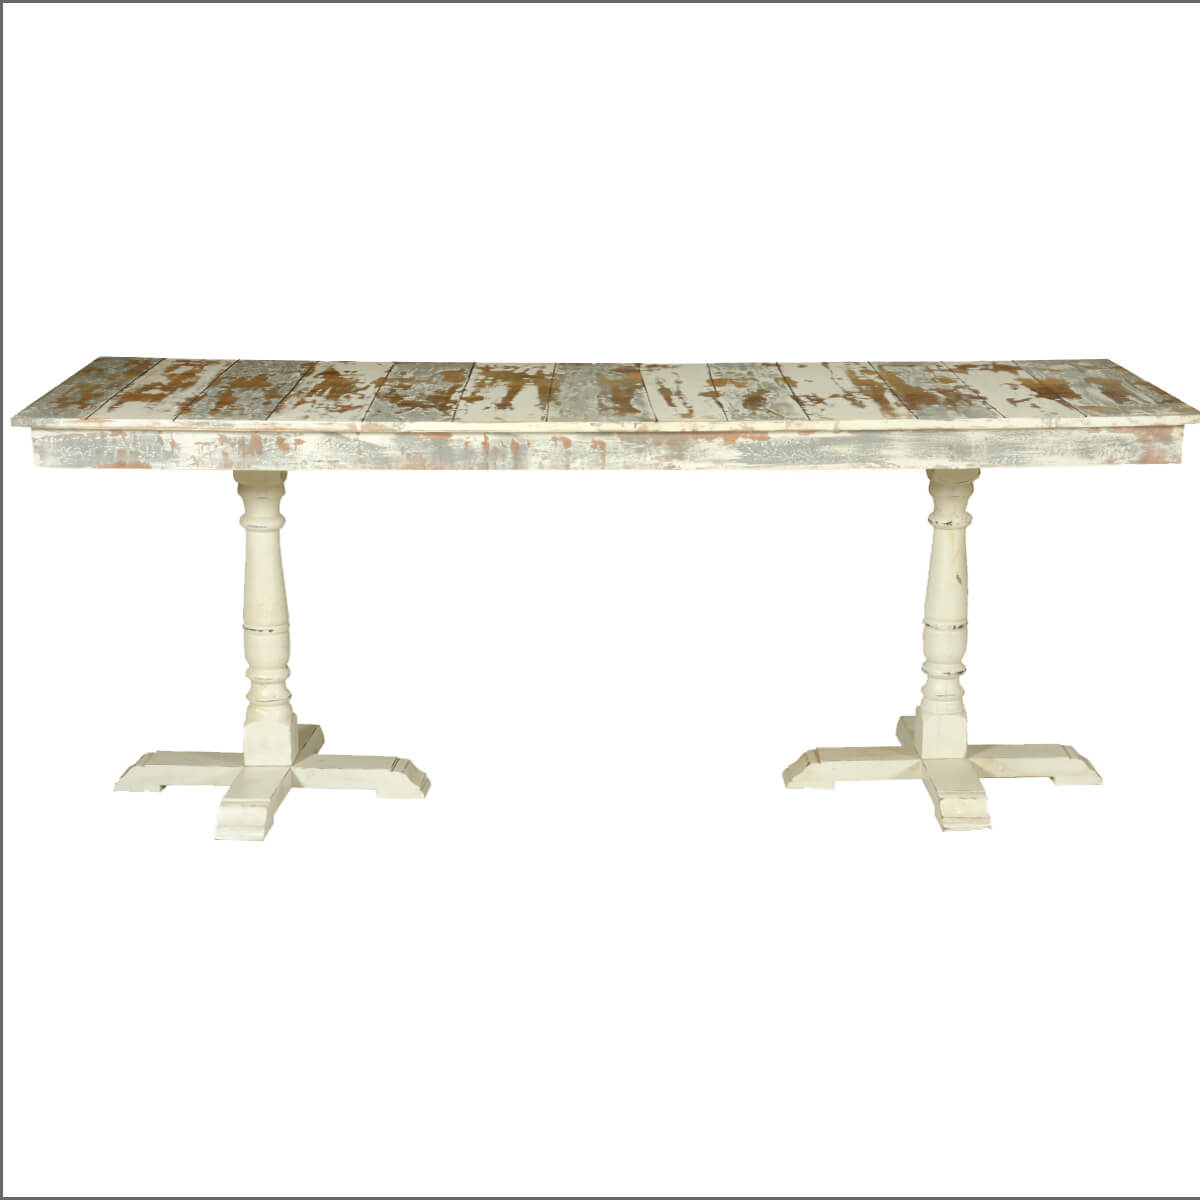 Grey amp White Distressed Mango Wood 785quot 2 Pedestal Dining  : 72071 from www.sierralivingconcepts.com size 1200 x 1200 jpeg 291kB